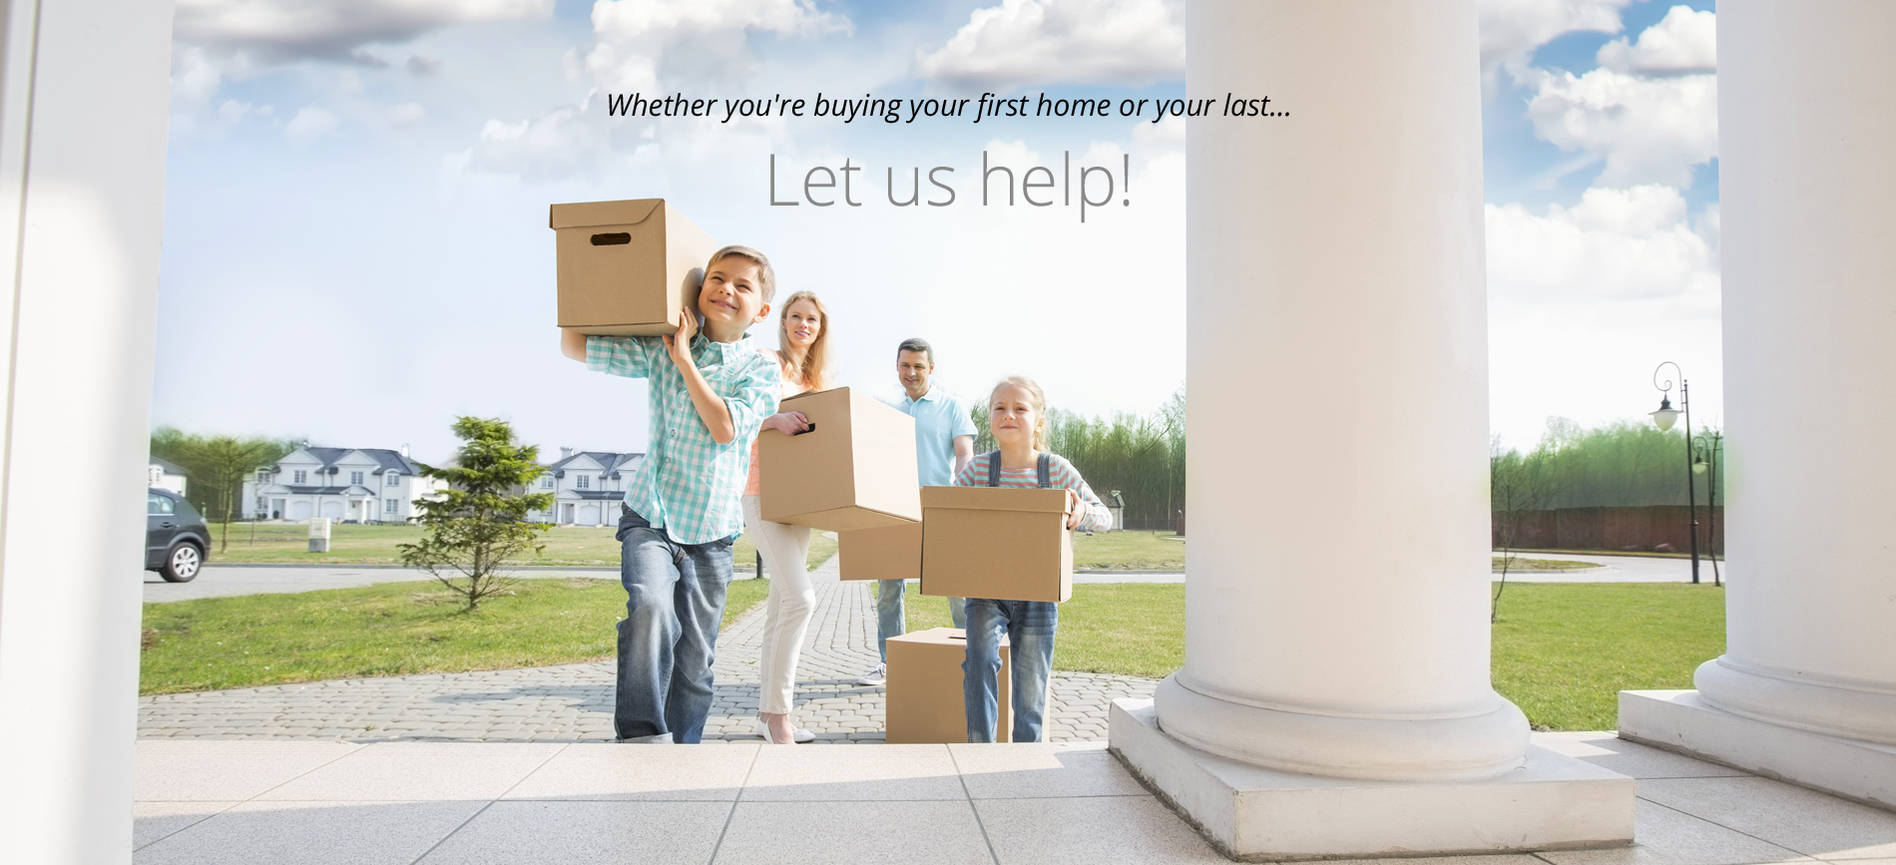 Whether you're buying your first home or your last, let us help!